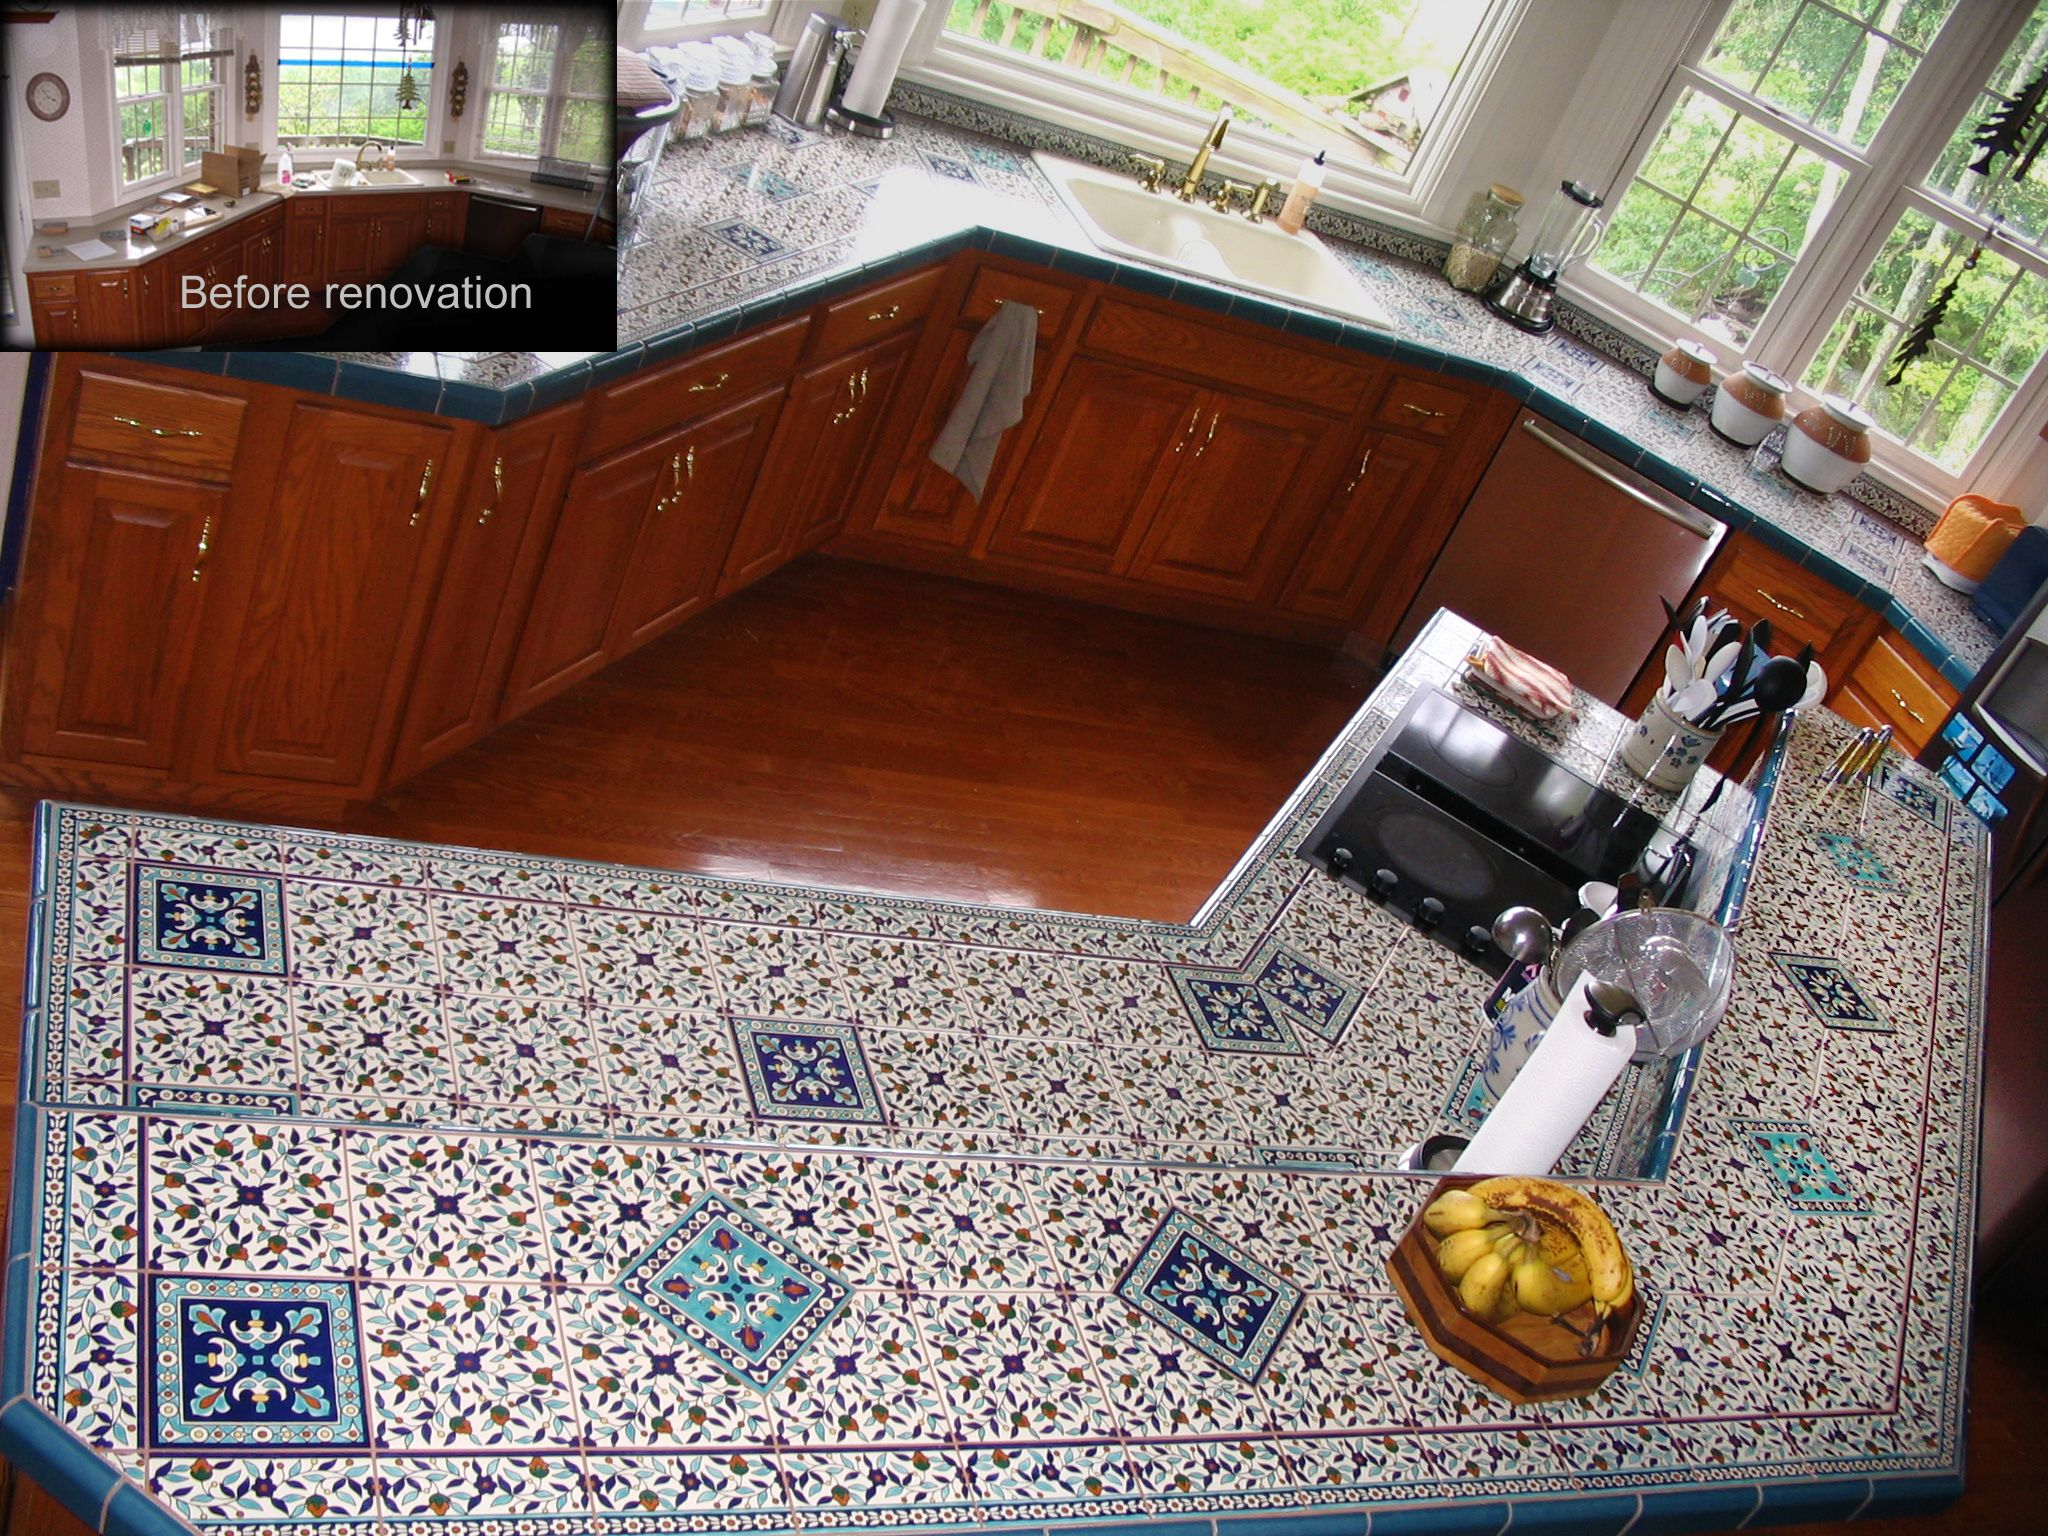 Ceramic Tile Kitchen Countertops Pictures Custom Hand Painted Ceramic Tile Kitchen Countertop For